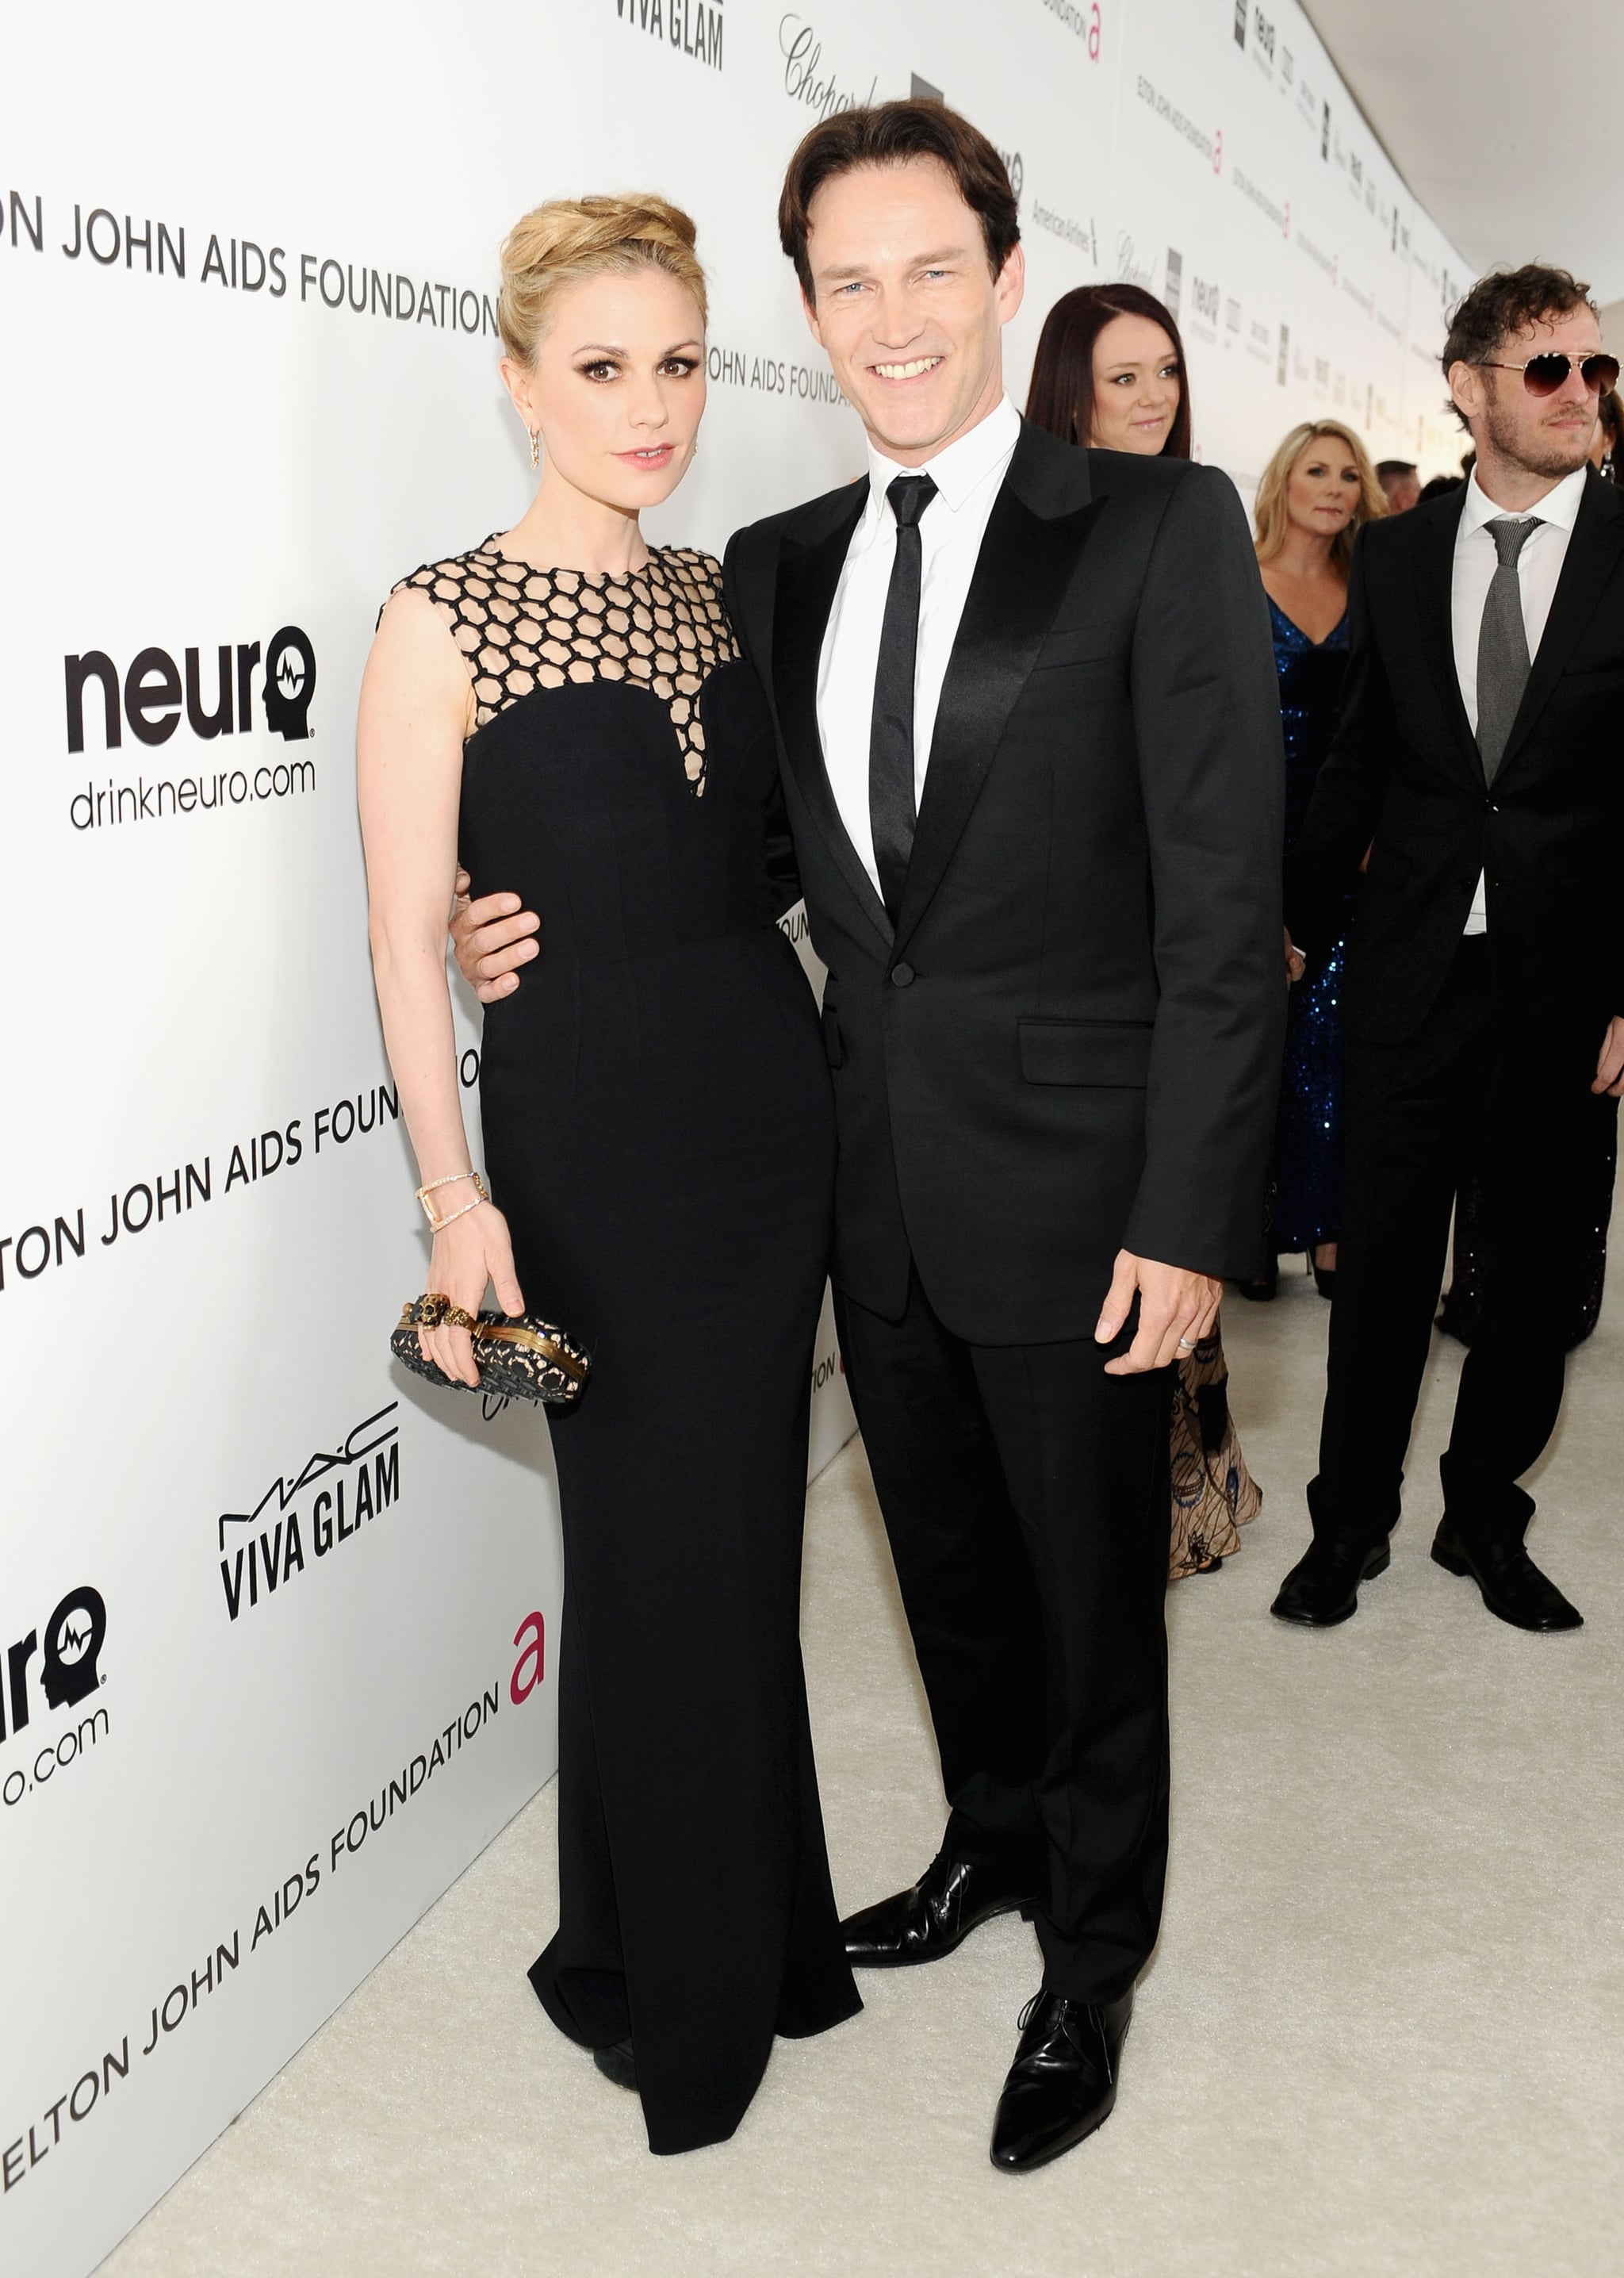 Anna Paquin and Stephen Moyer arrived at the Elton John Oscar party together.